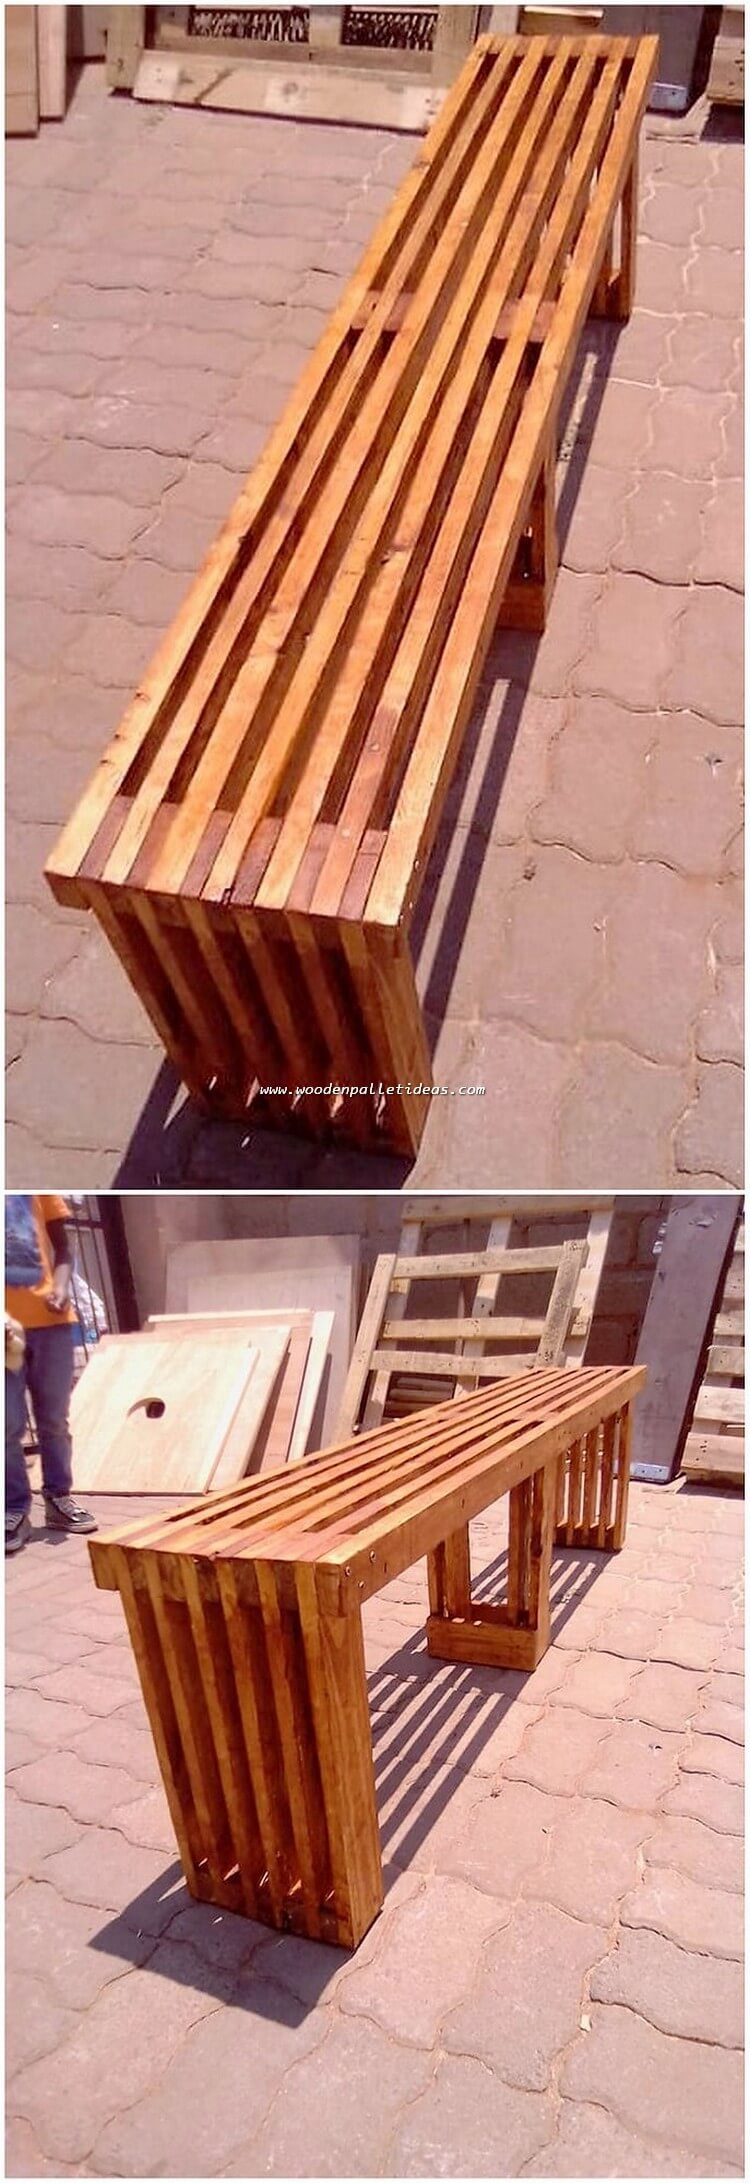 Pallet Table or Bench